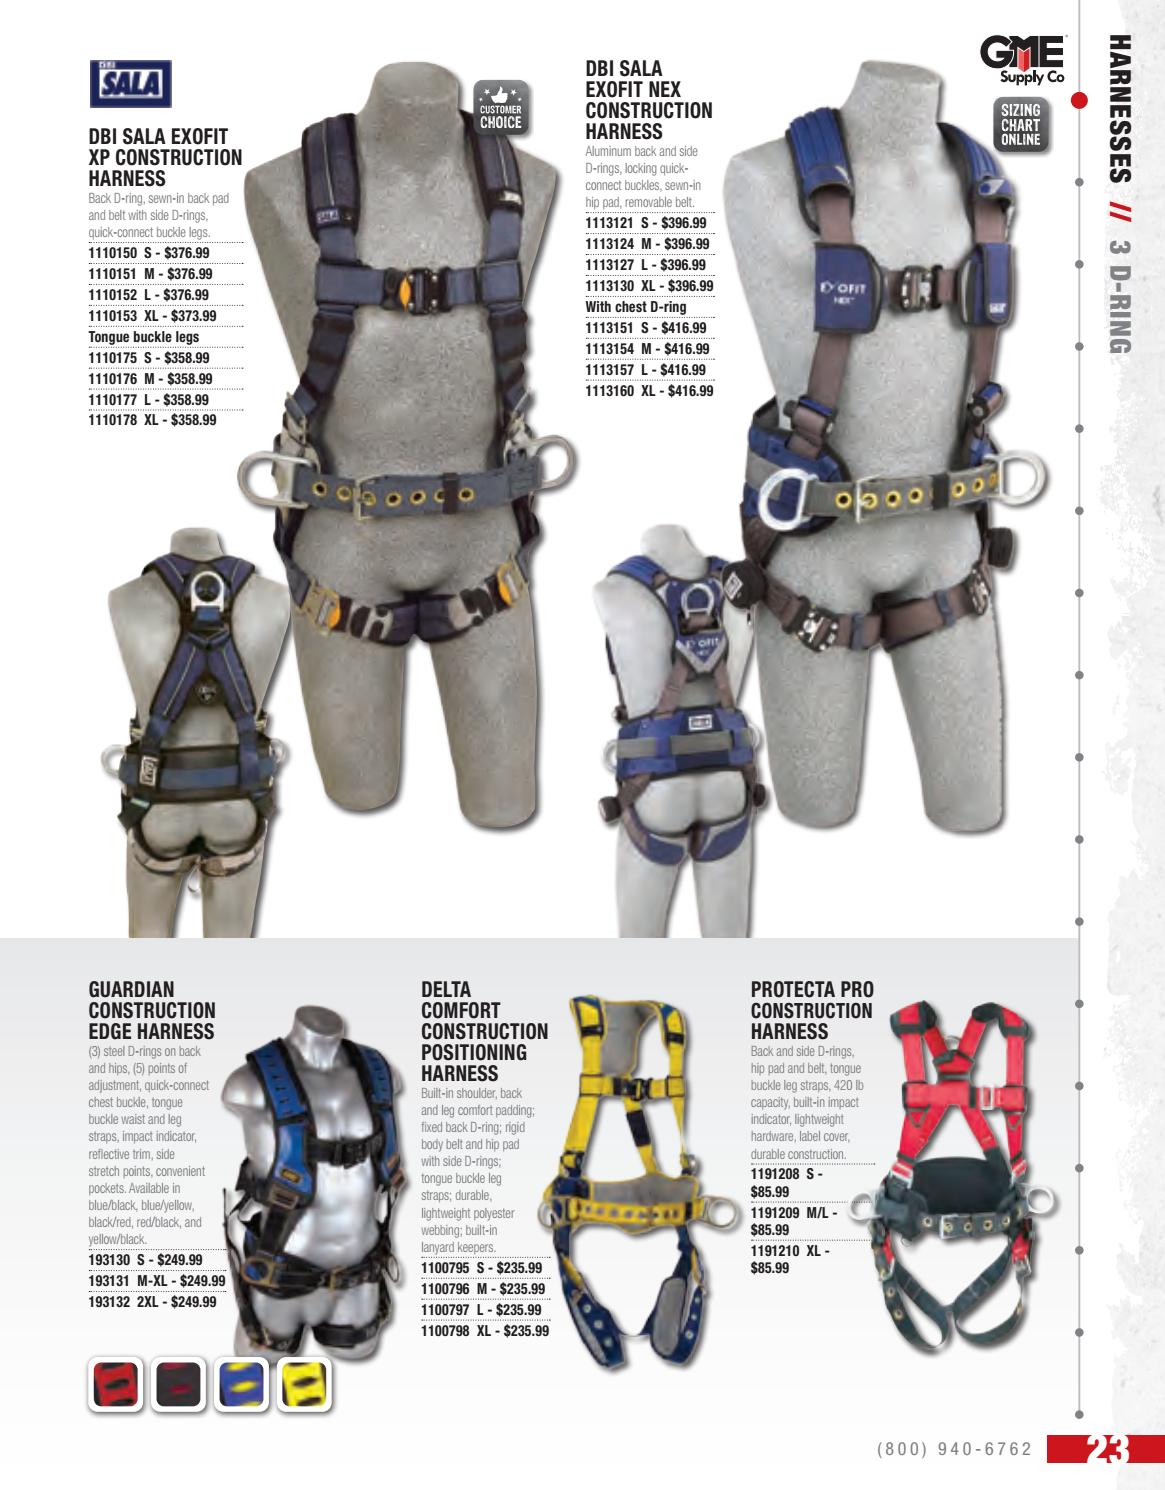 Alum Back//Side D-Rings Locking Quick Connect Buckles Large DBI//Sala ExoFit NEX 1113127 Construction Harness Blue//Gray Sewn In Hip Pad /& Belt